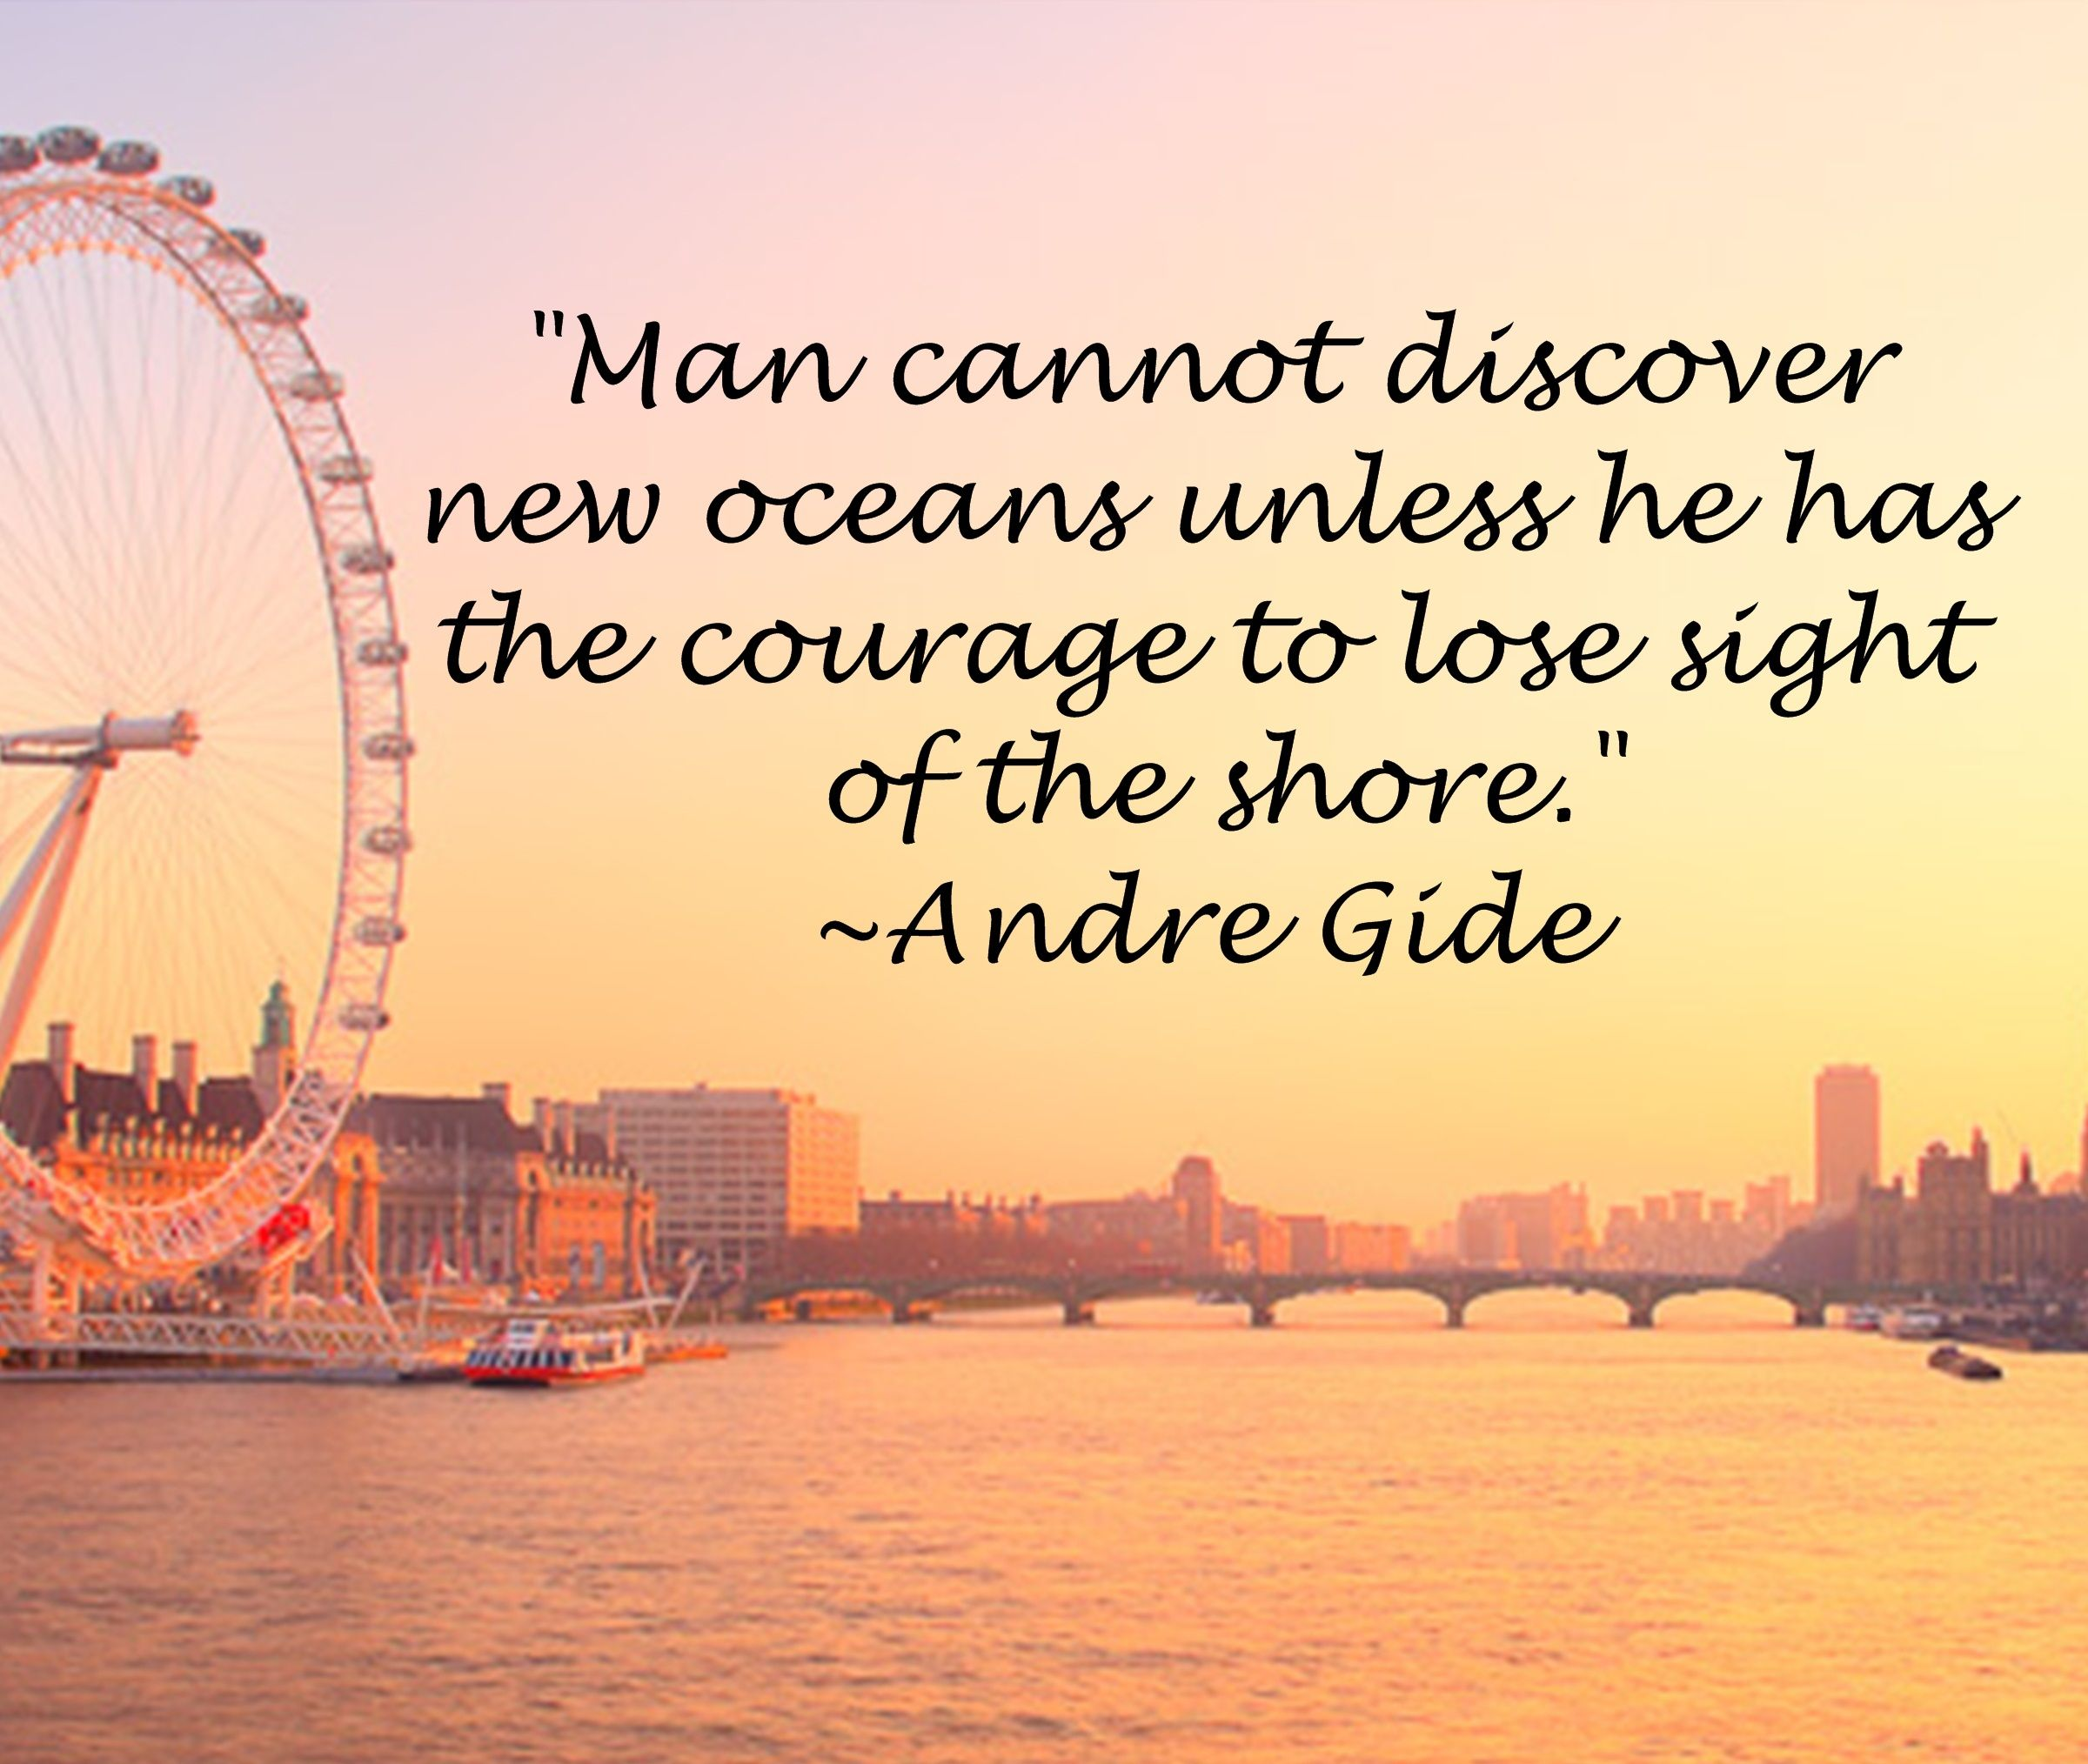 cool Inspirational Quotes for Digital marketing panies in Singapore